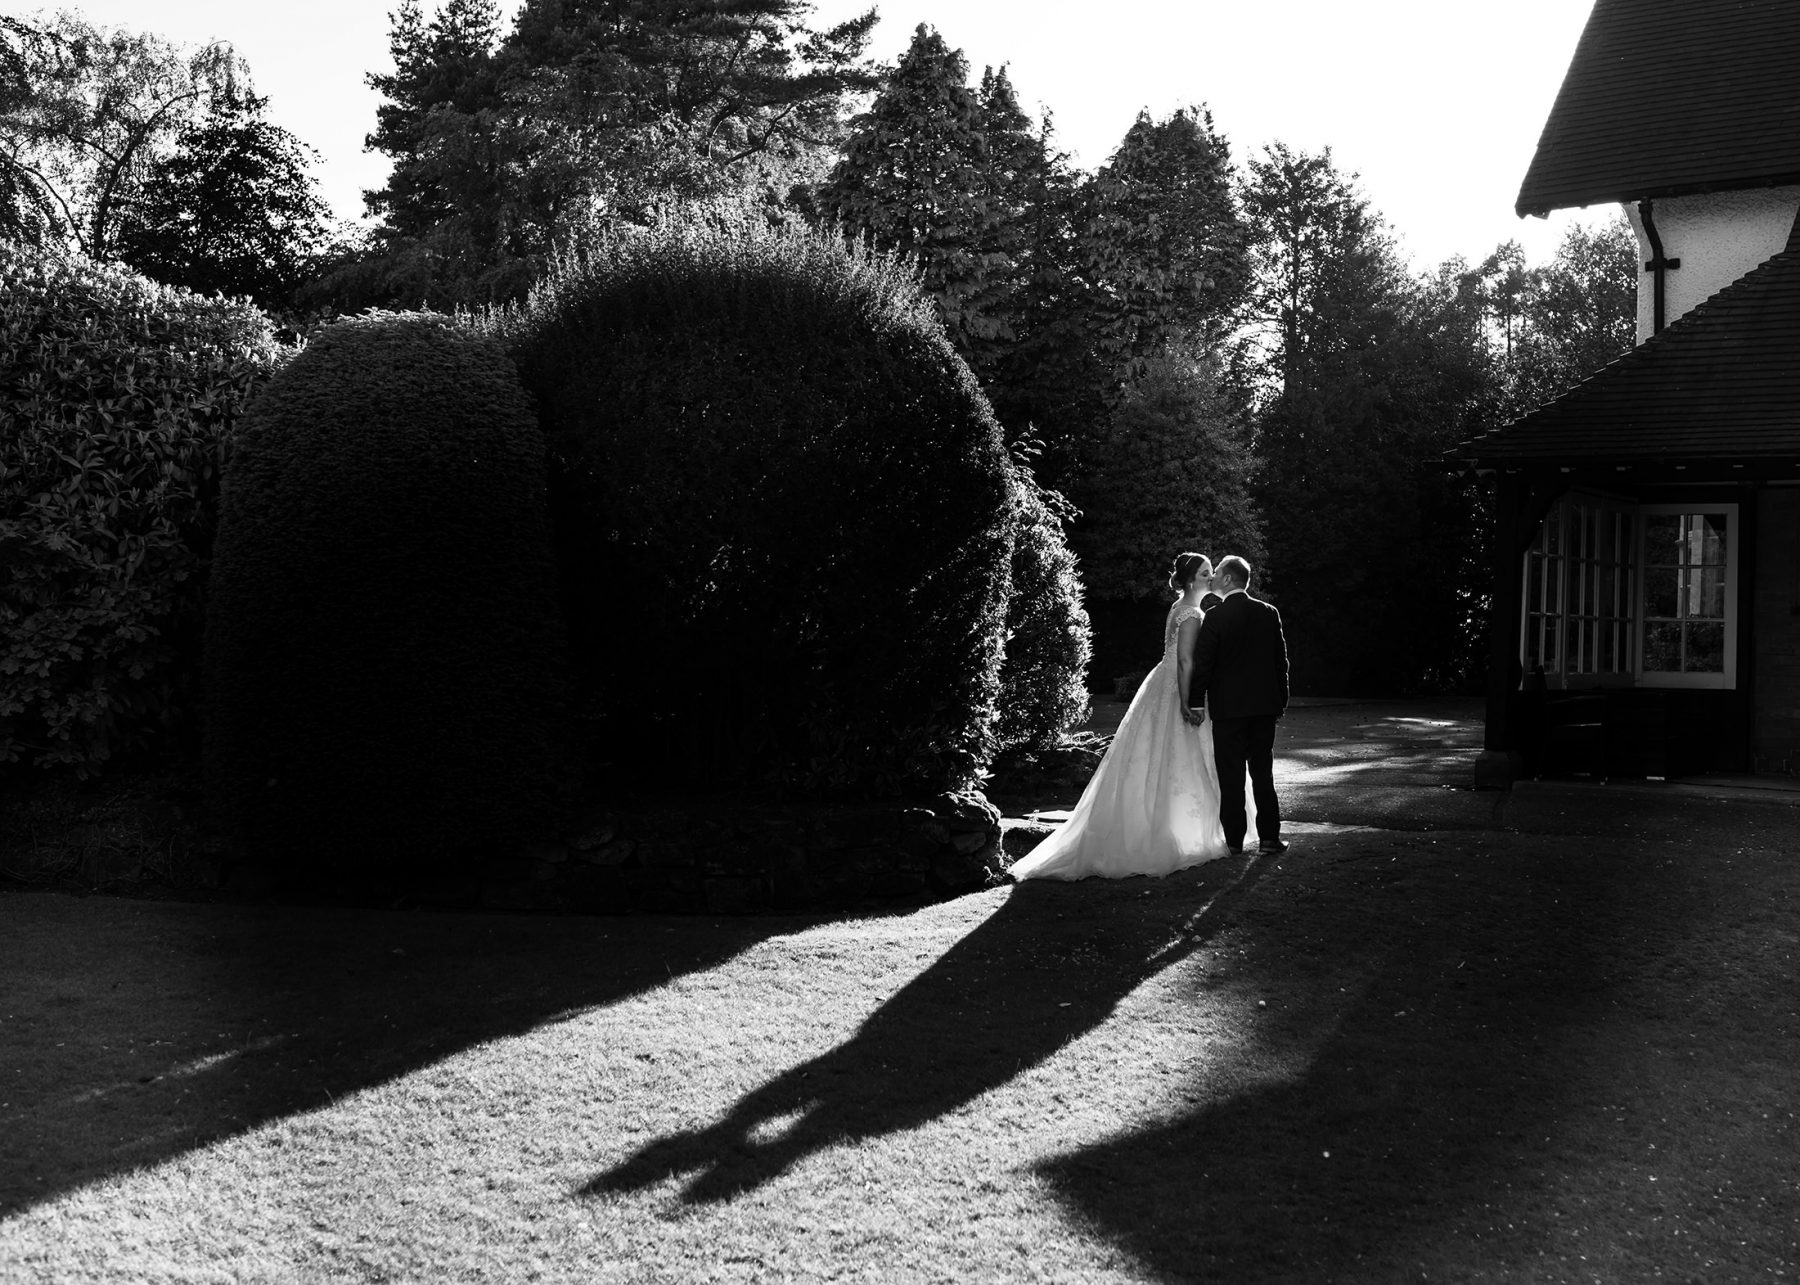 Shadows from teh bride and groom created by the sun